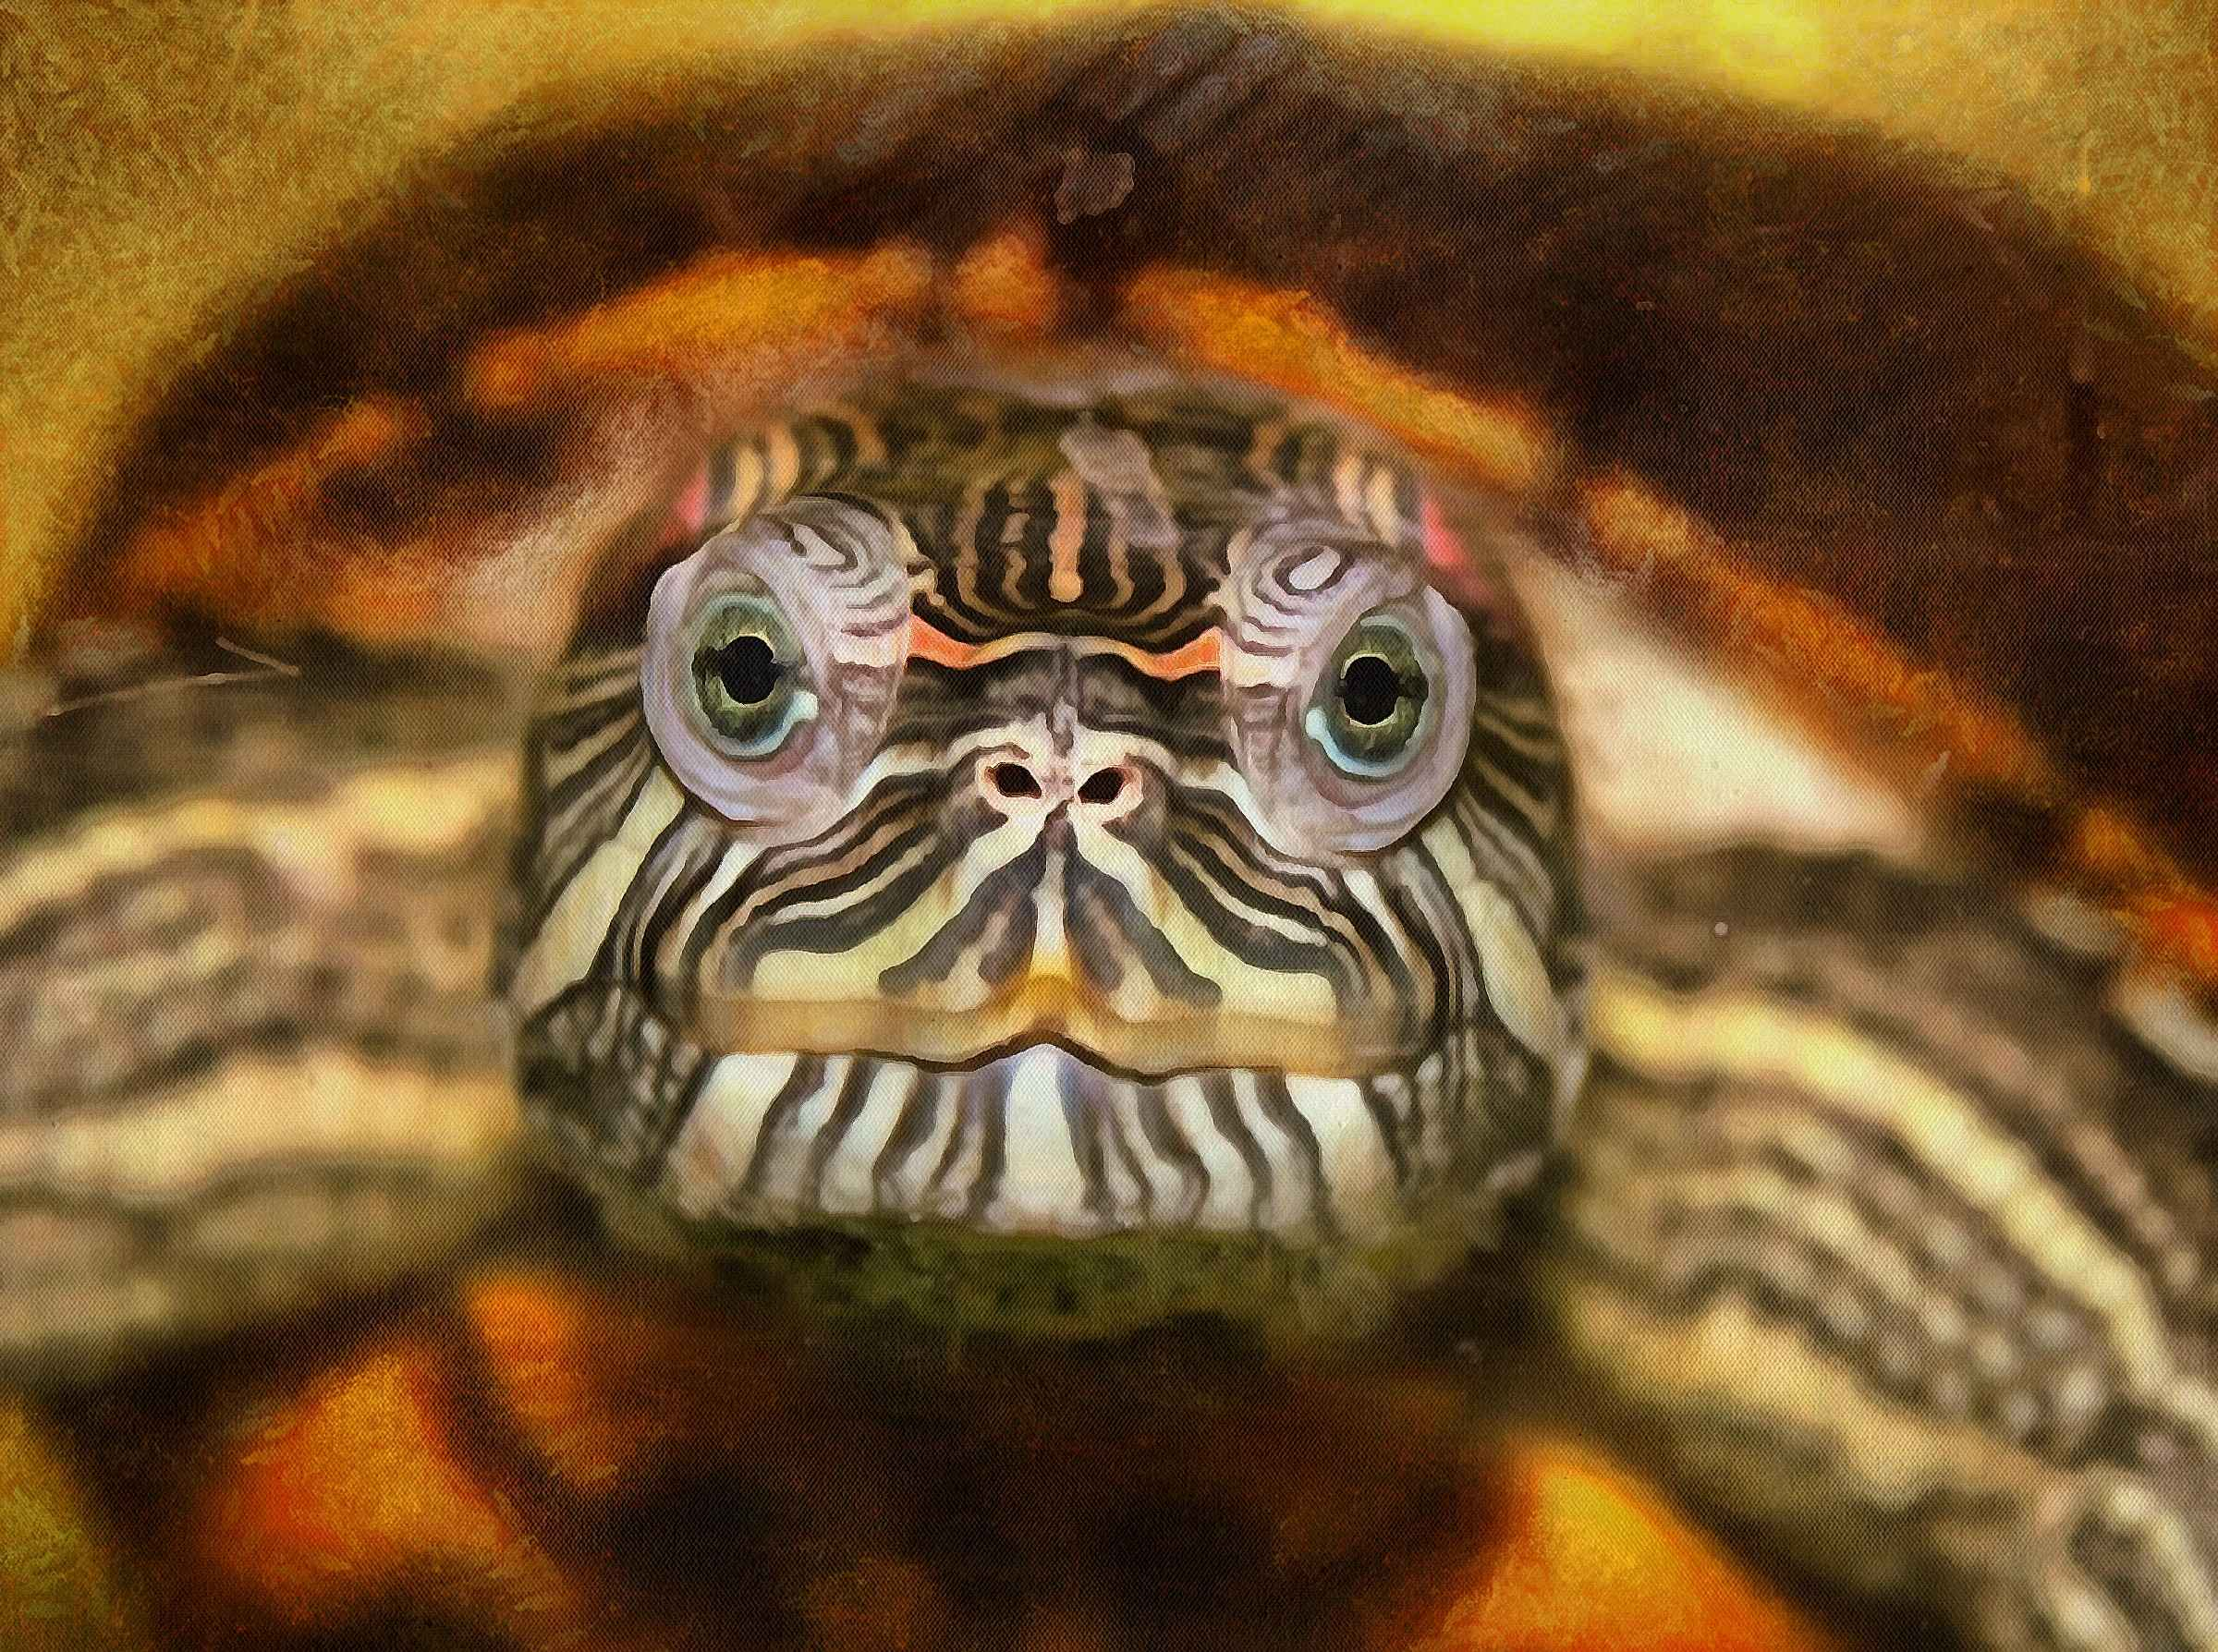 Free Tortoise images, Turtle free images,  –  Turtle stock free images, free images turtles, tortoise public domain images, Turtle public domain images, Tortoise free ,!